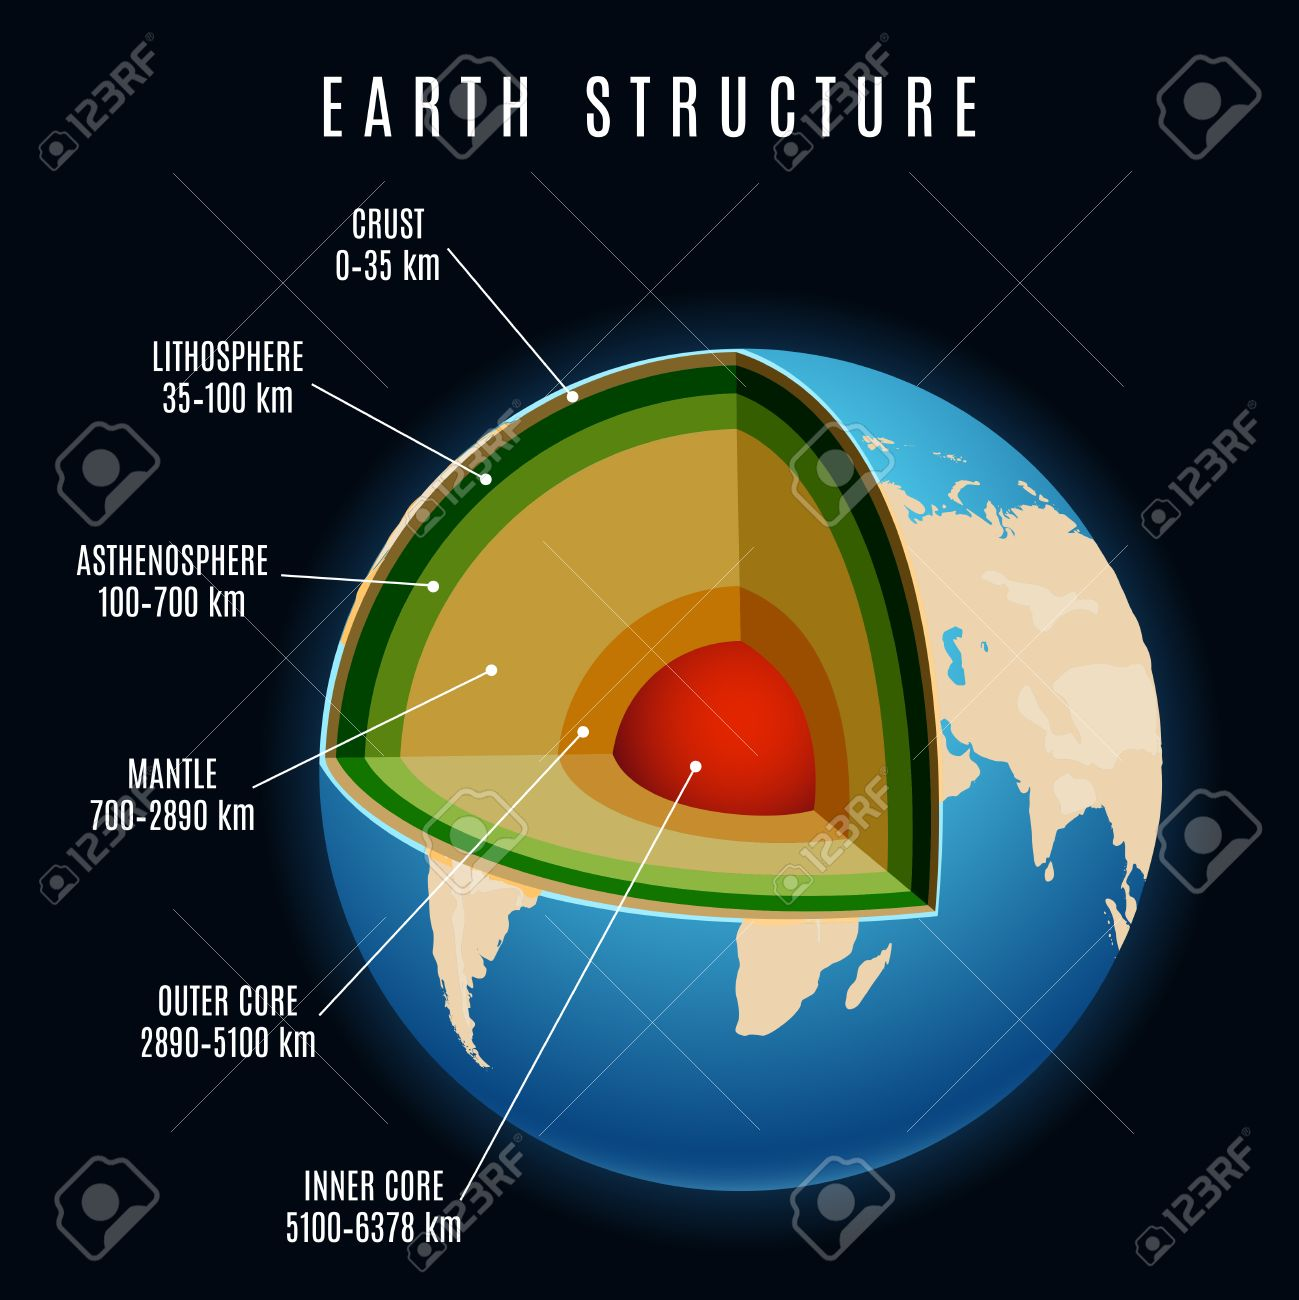 Earth structure with lithosphere and continental crust earth earth structure with lithosphere and continental crust earth mantle and earth core vector illustration stock ccuart Image collections